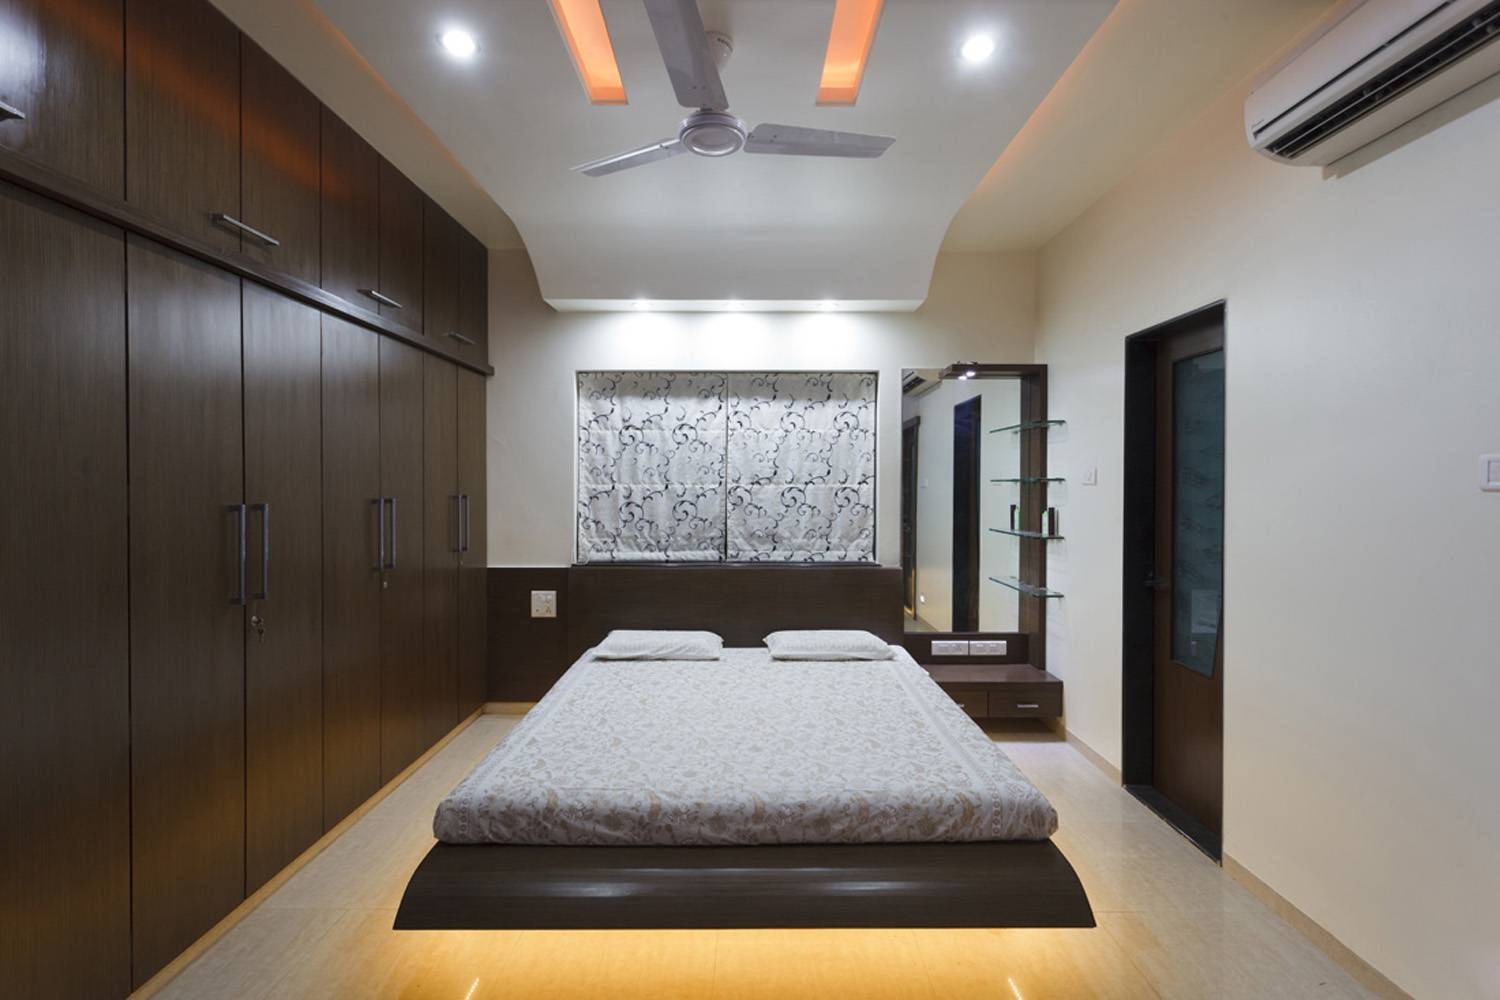 Bed room interior design portfolio leading interior for Interior designs photos